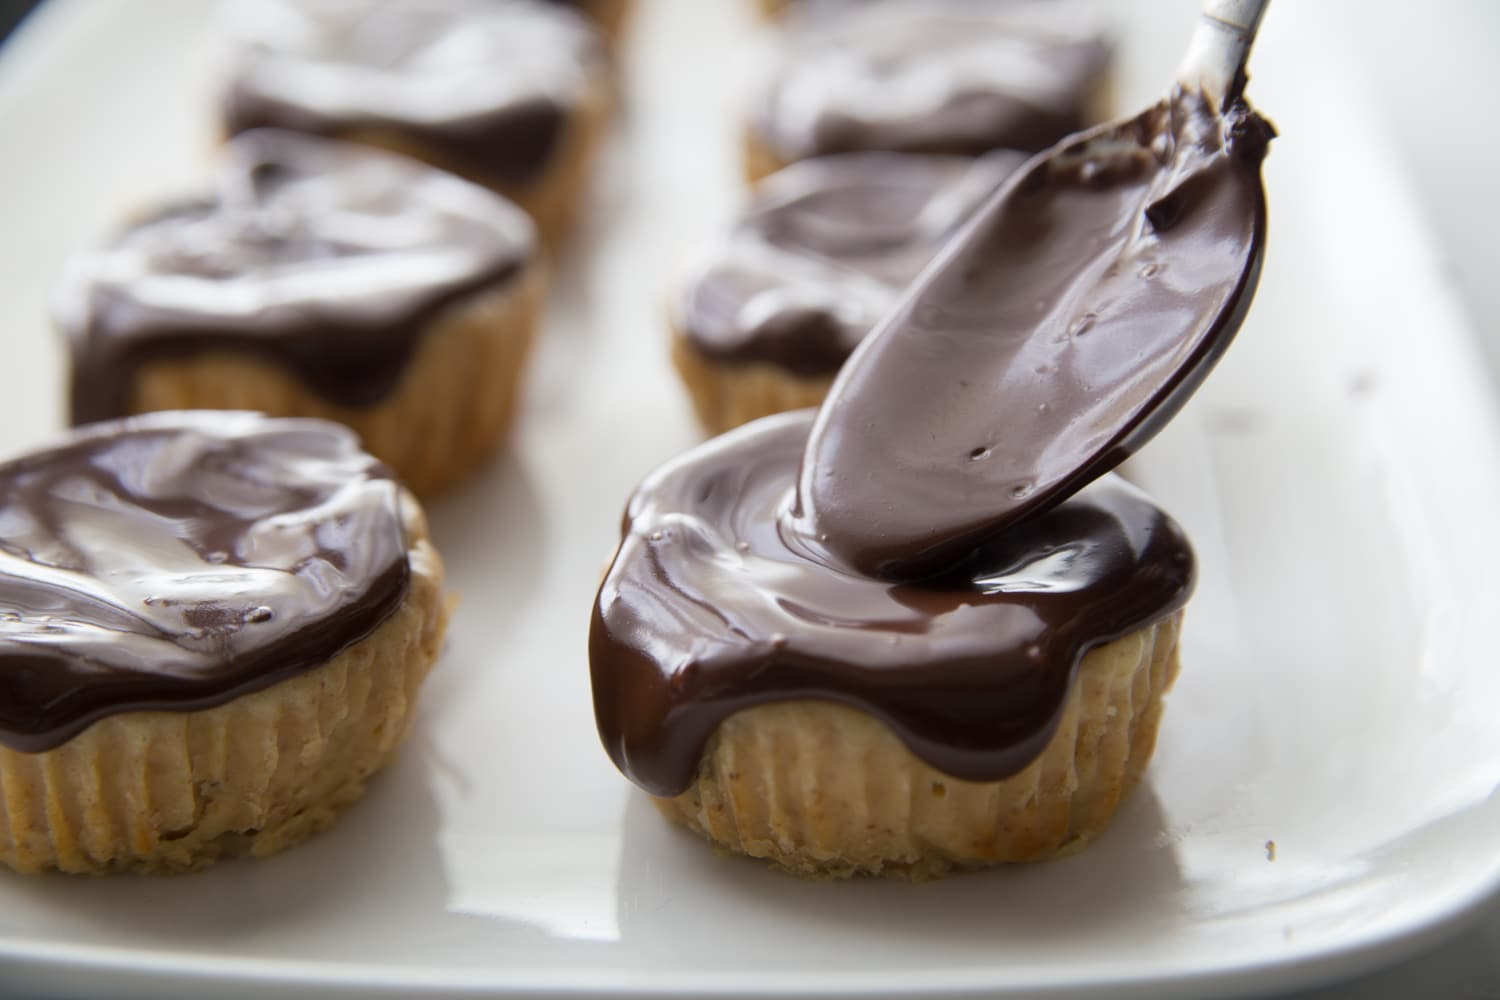 chocolate sauce being spooned over mini cheesecakes